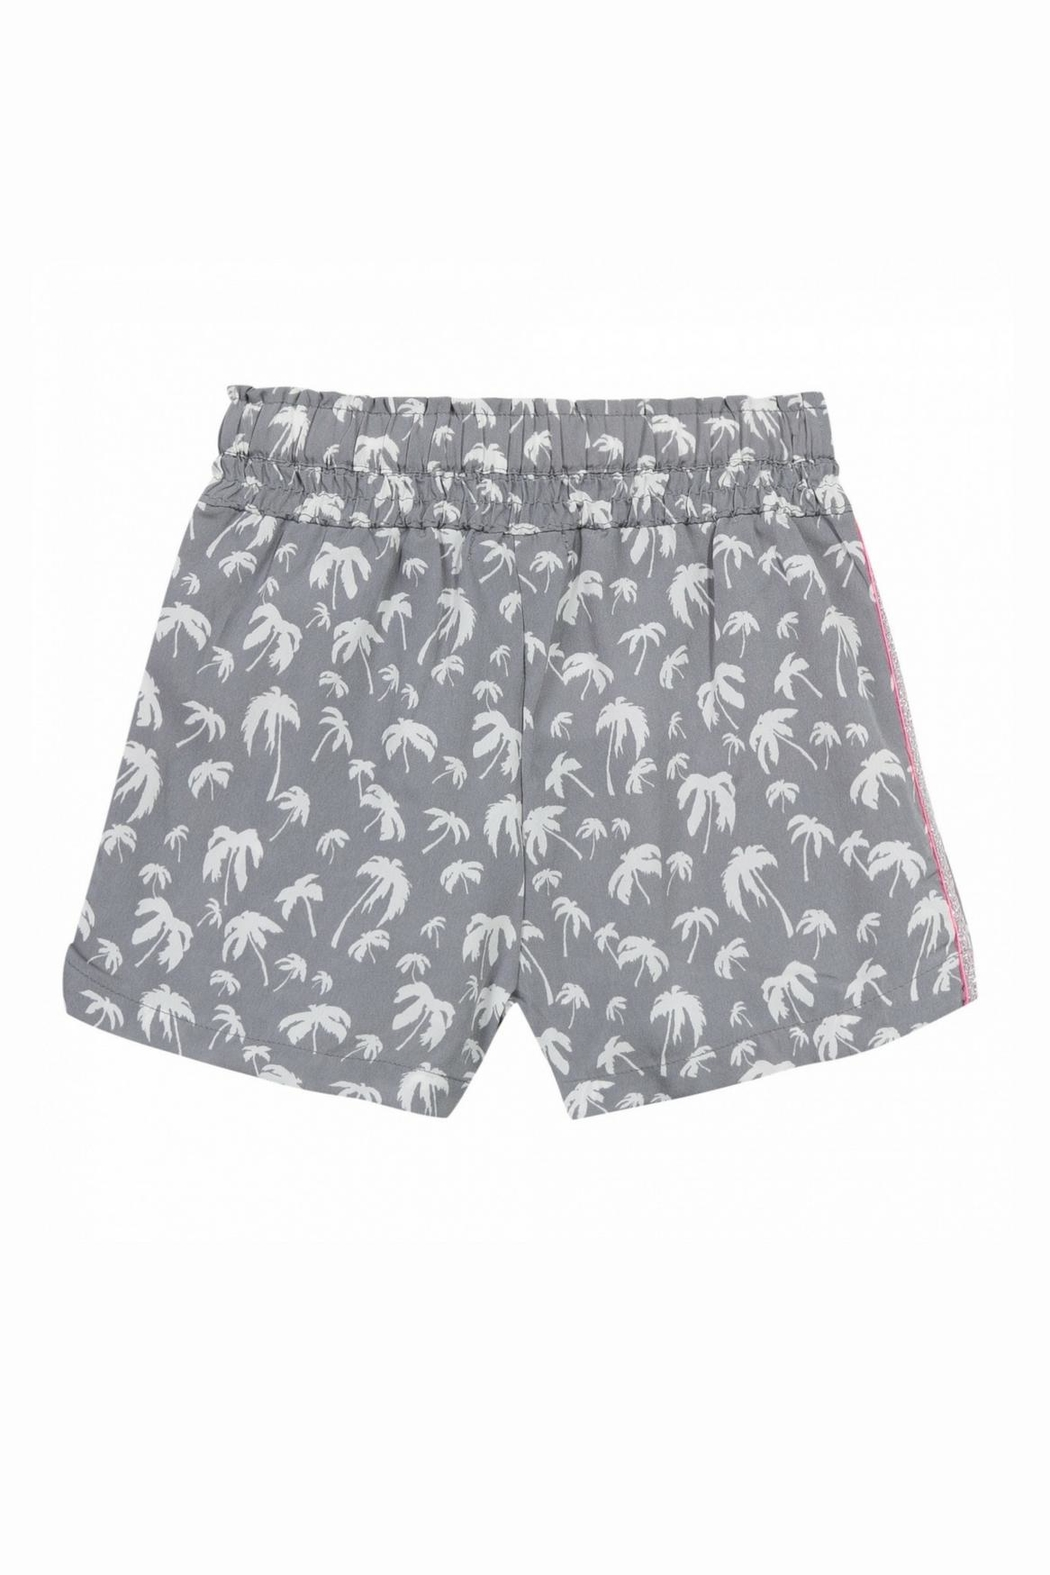 3 Pommes Printed Flowy Shorts from Quebec by Boutique Lollipop ...